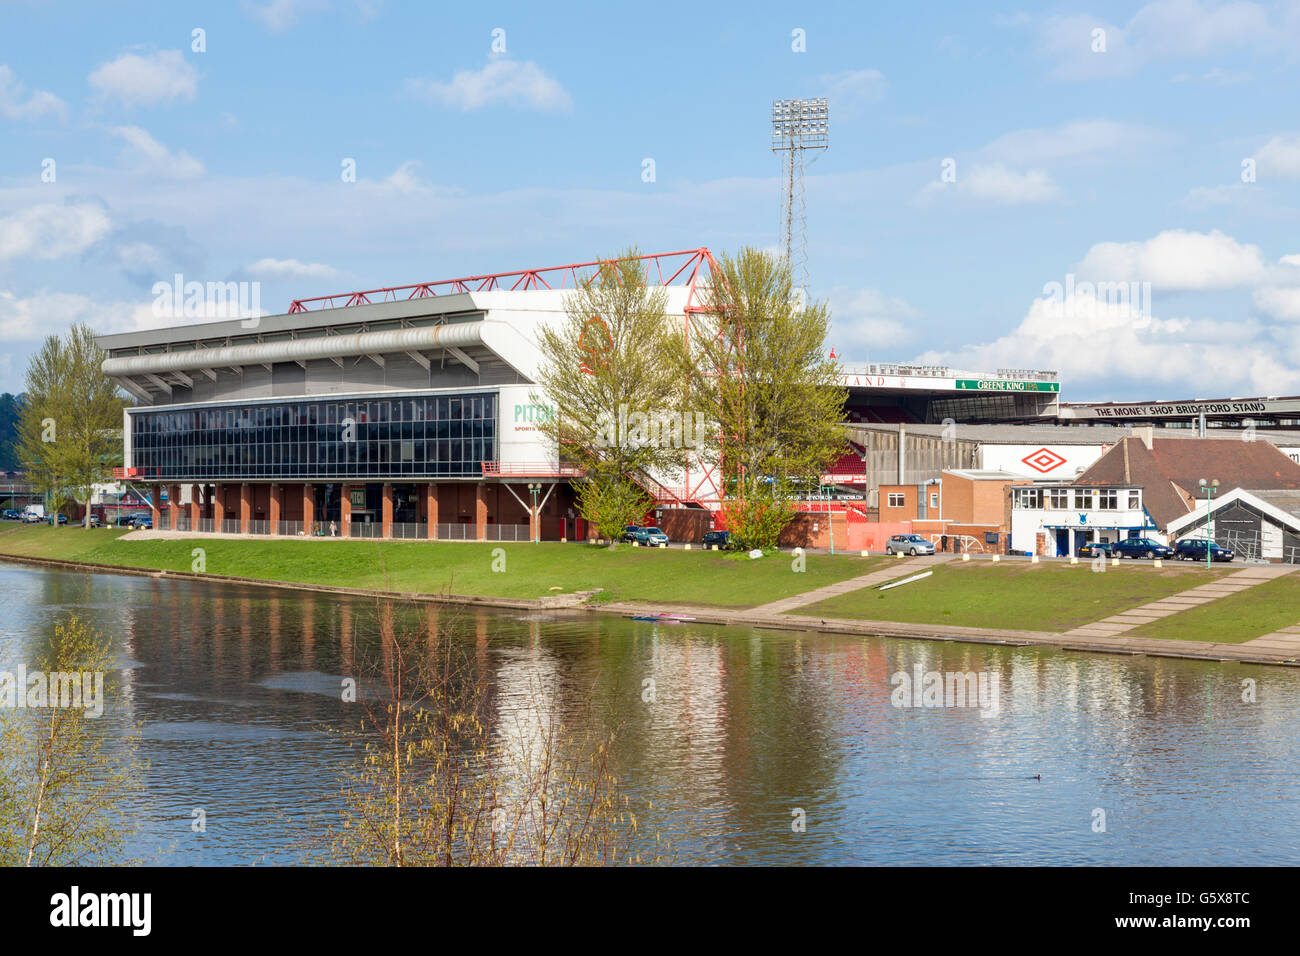 The City Ground, Nottingham Forest Football Club seen from across the River Trent, Nottingham, England, UK - Stock Image